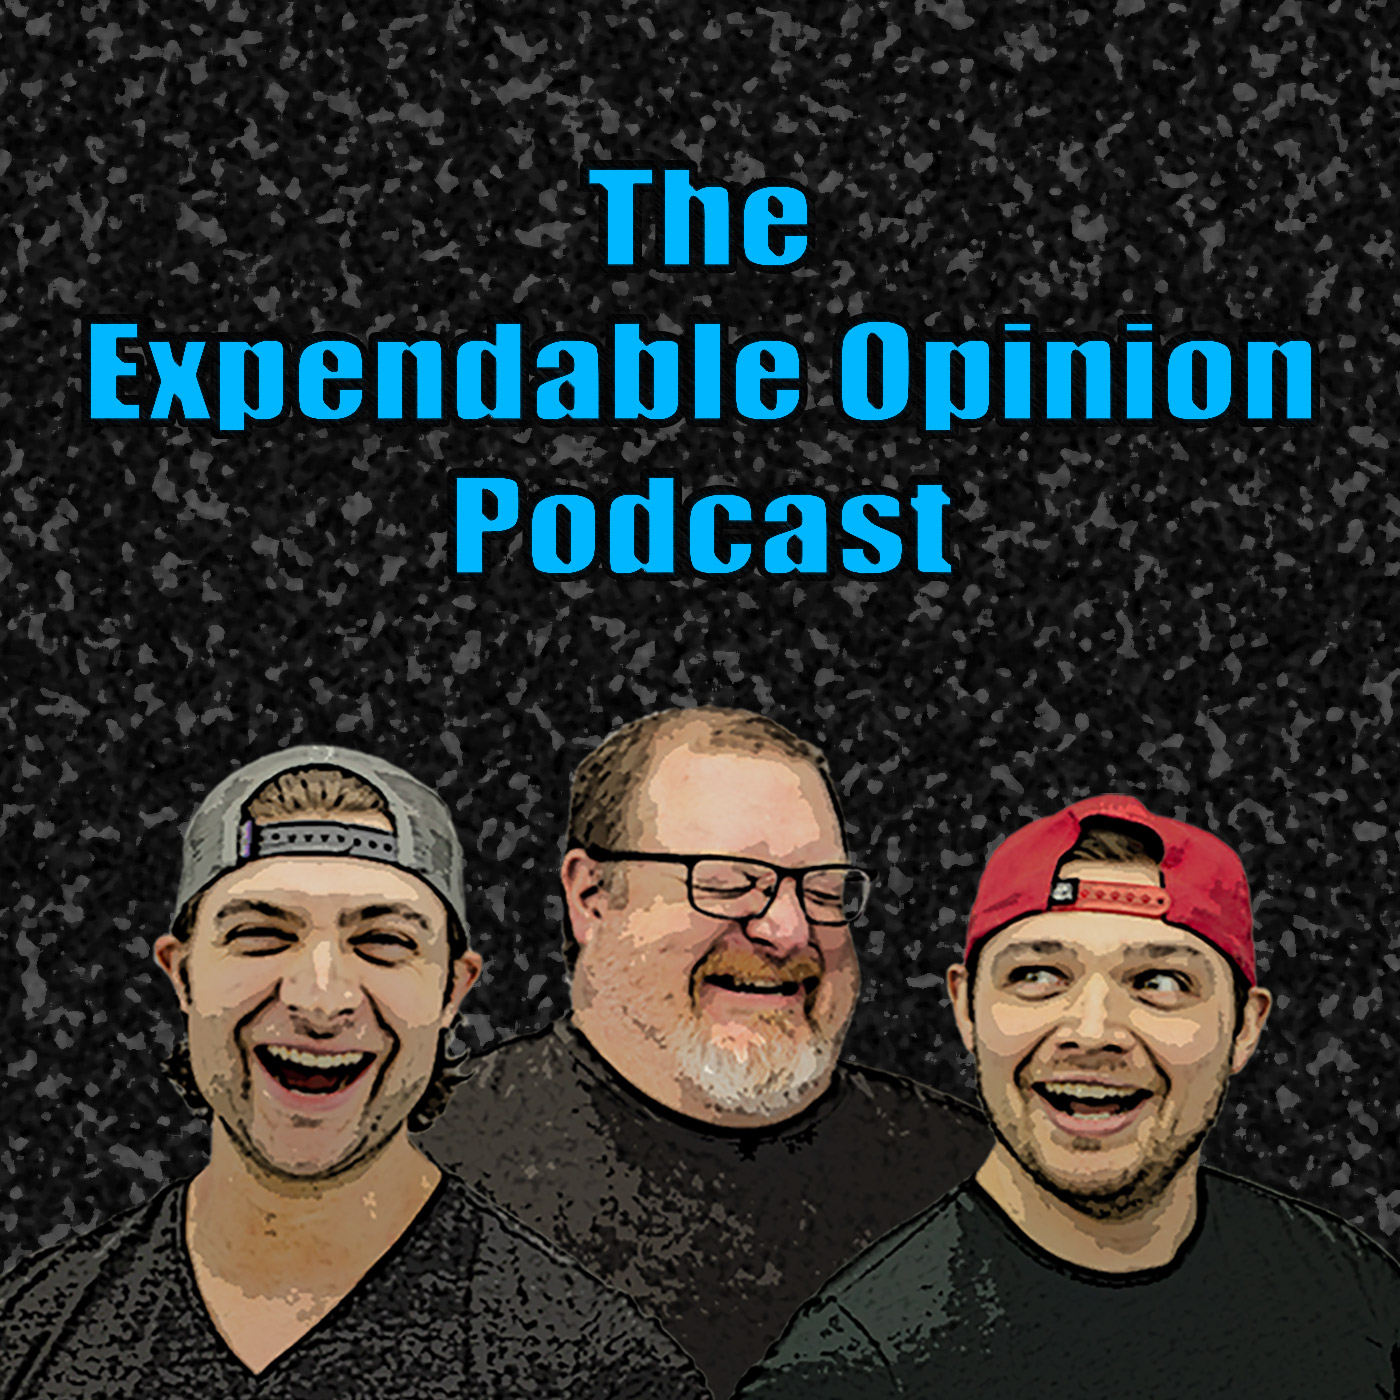 The Expendable Opinion Podcast